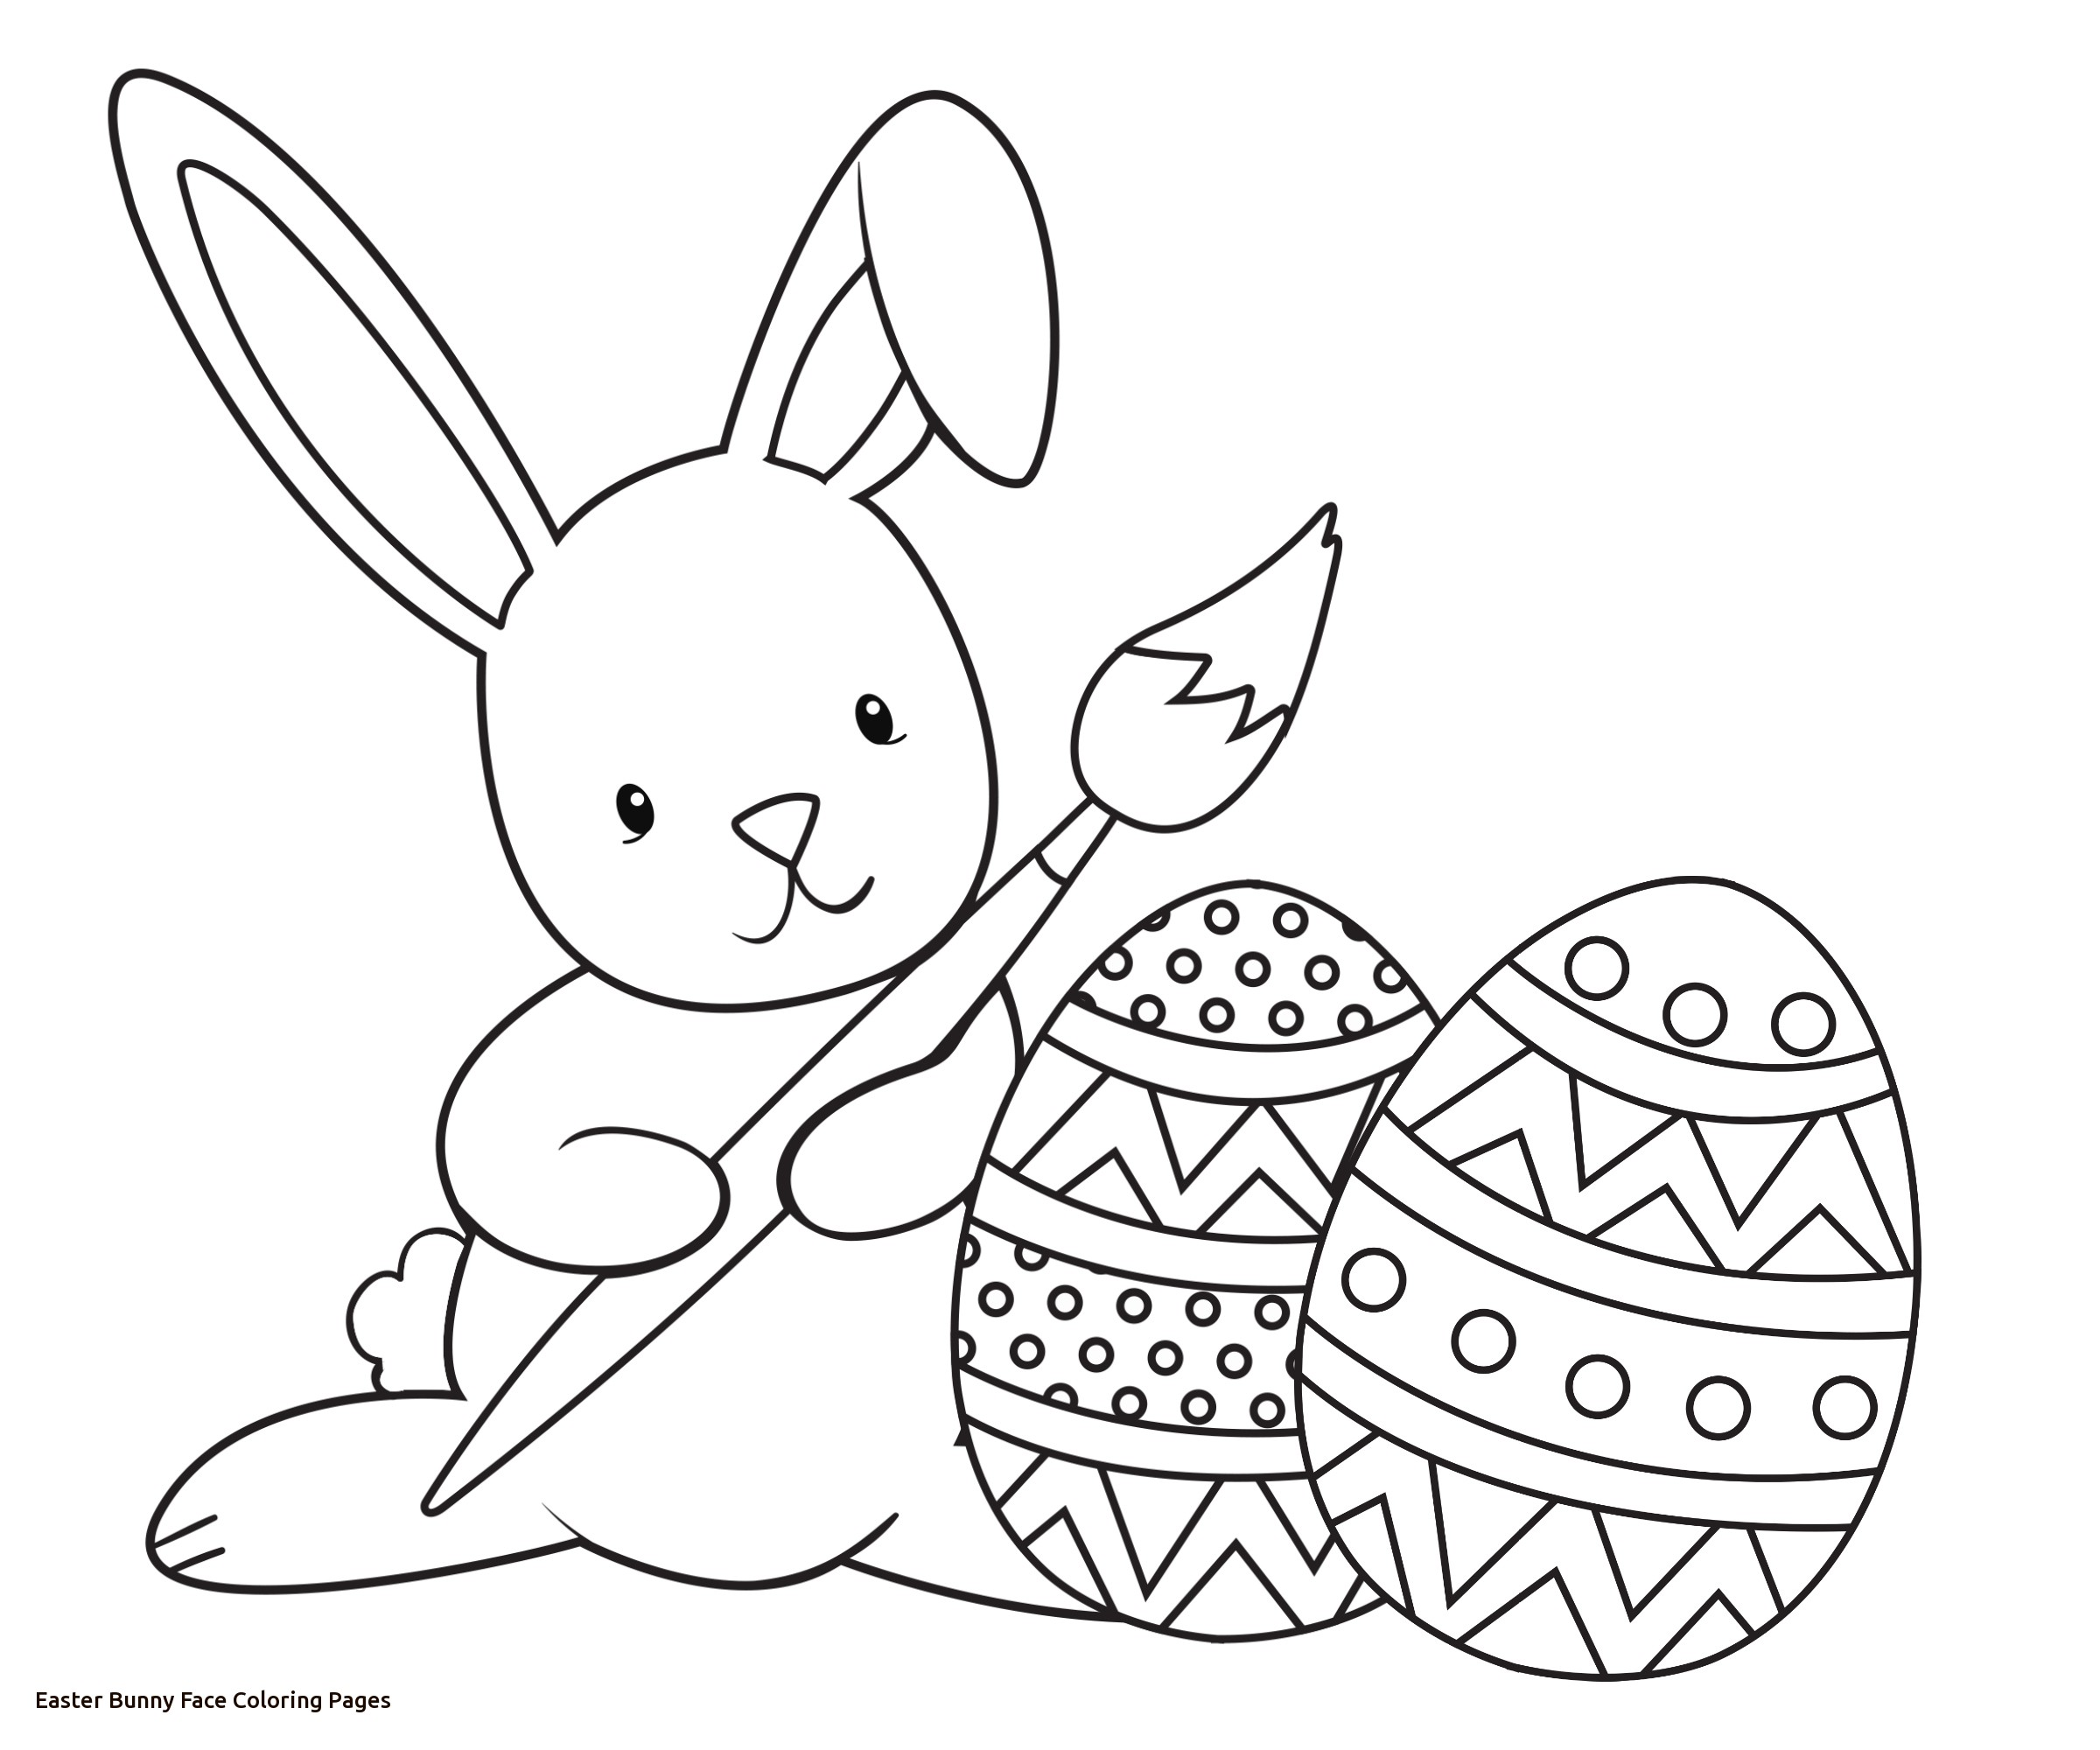 2400x2000 Coloring Book Easter Bunny Color Image Gallery Website Of Face